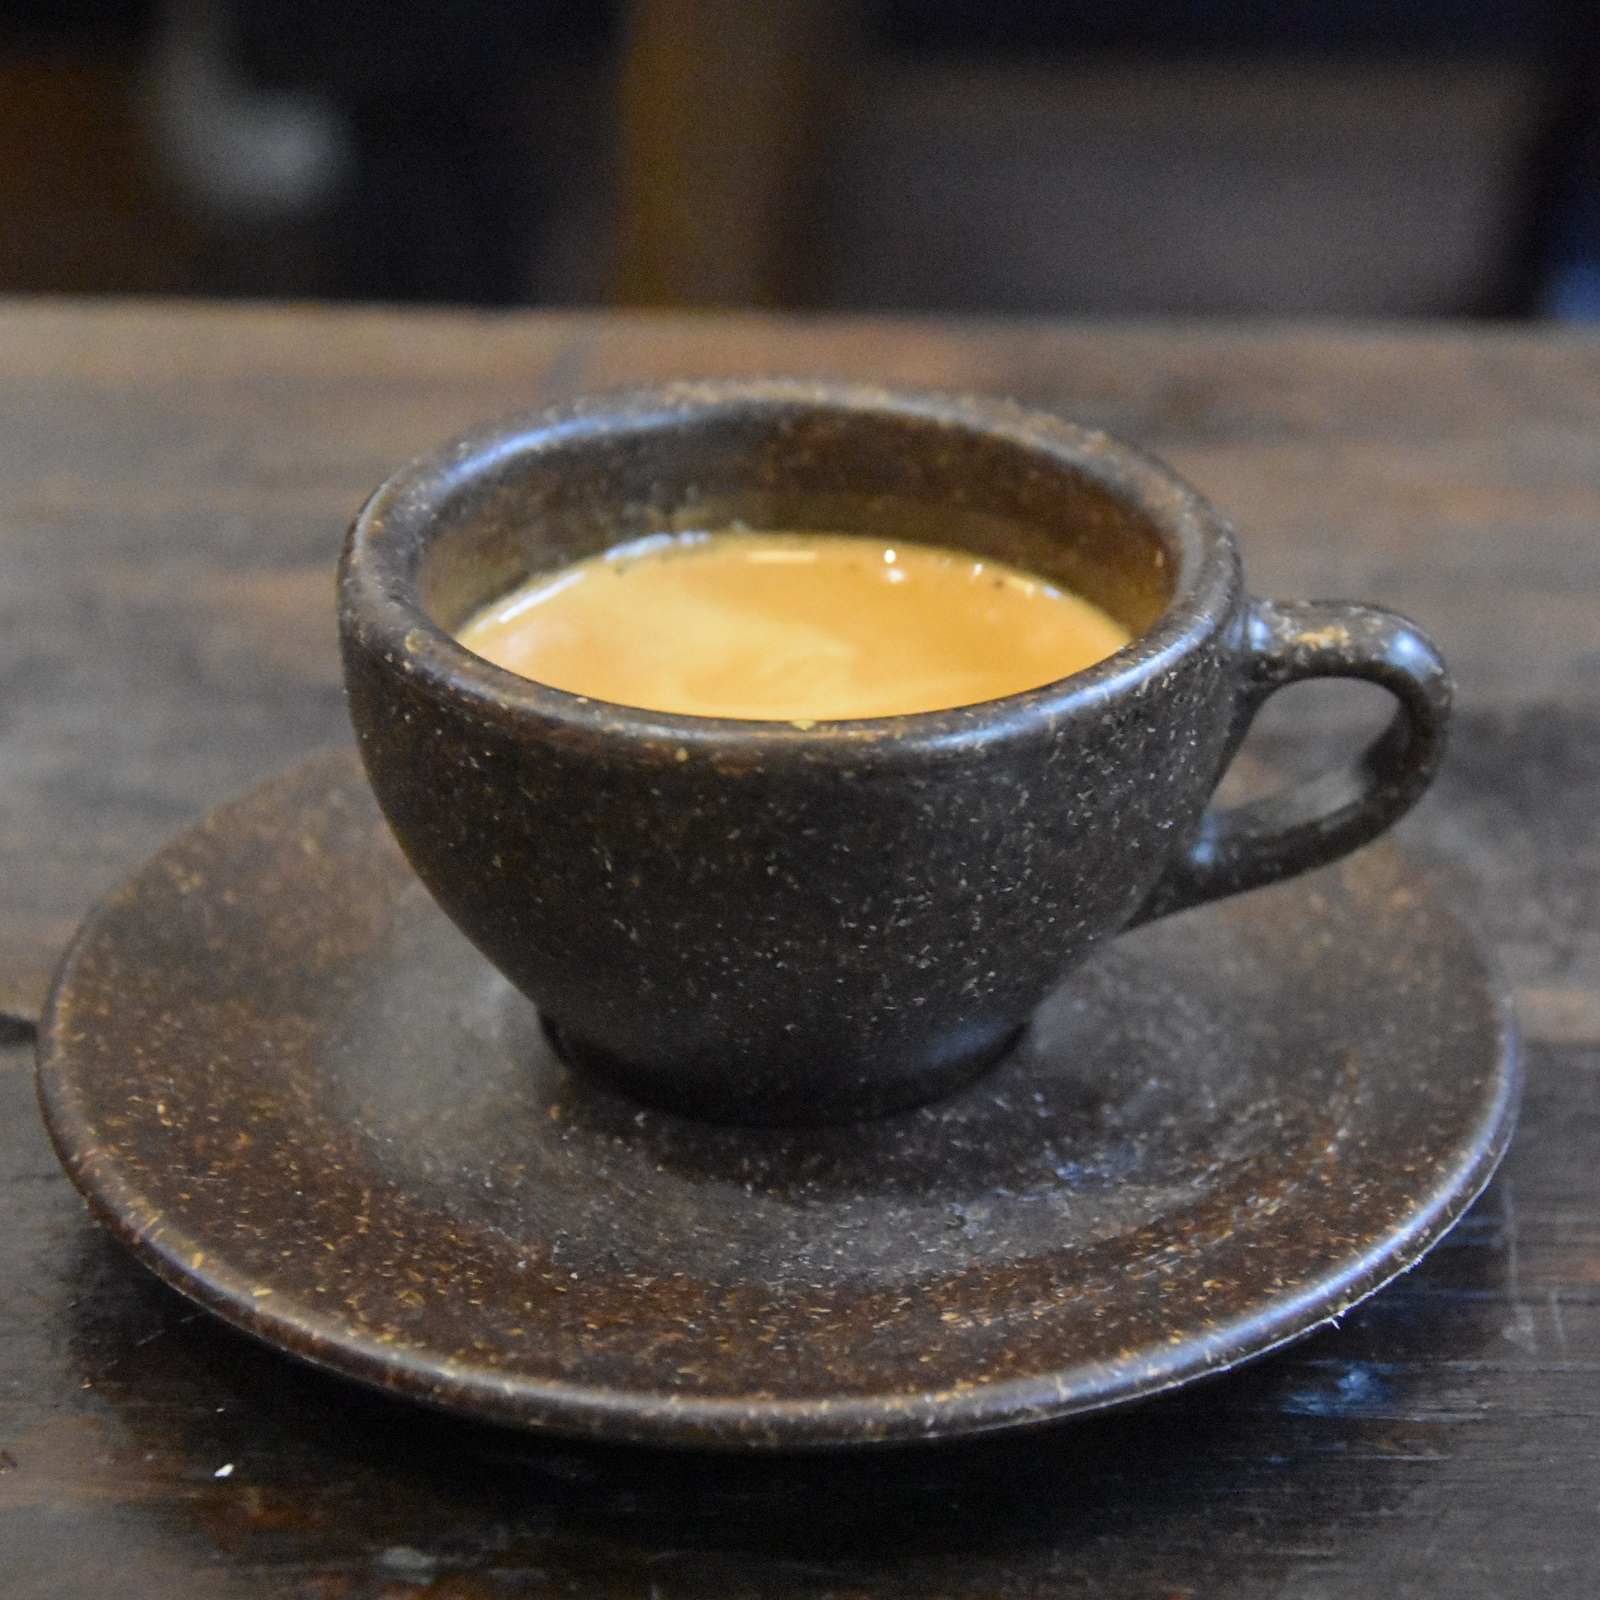 A lovely Assembly espresso (a washed El Salvador) in a Kaffeeform cup, made from recylced coffee grounds, at Just Between Friends Coffee in Manchester.